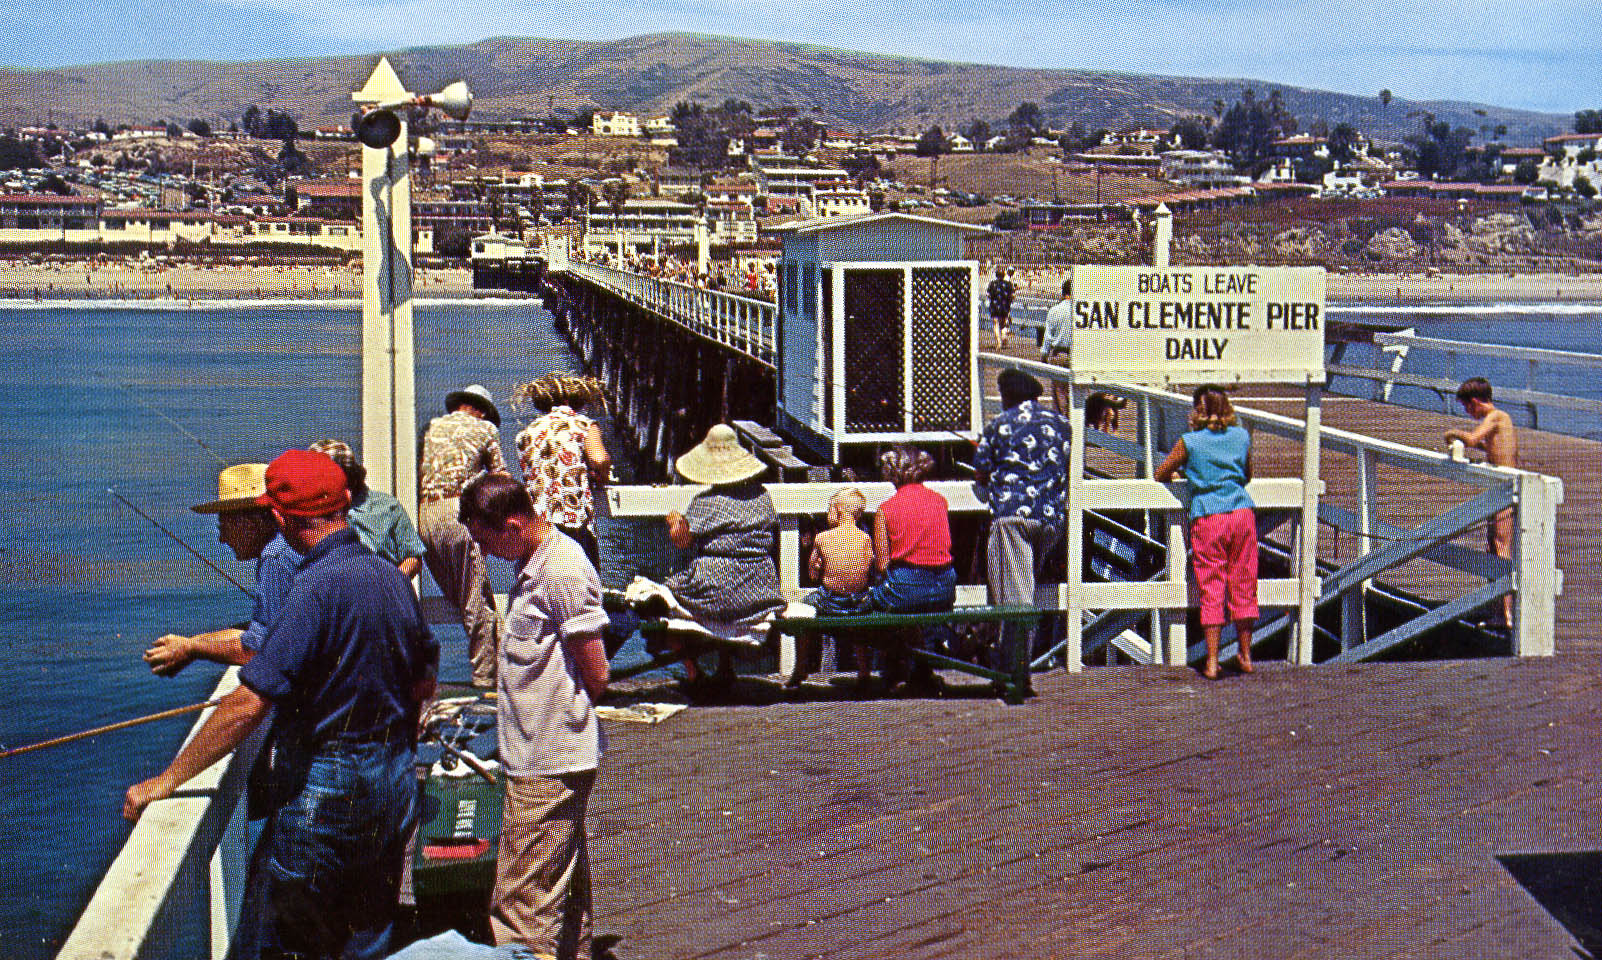 From the Archives   The San Clemente Pier was built in 1928 and rebuilt in 1985 after a vicious storm damaged it significantly. The Pier remains one of San Clemente's most treasured icons. Photo: Courtesy of the city of San Clemente